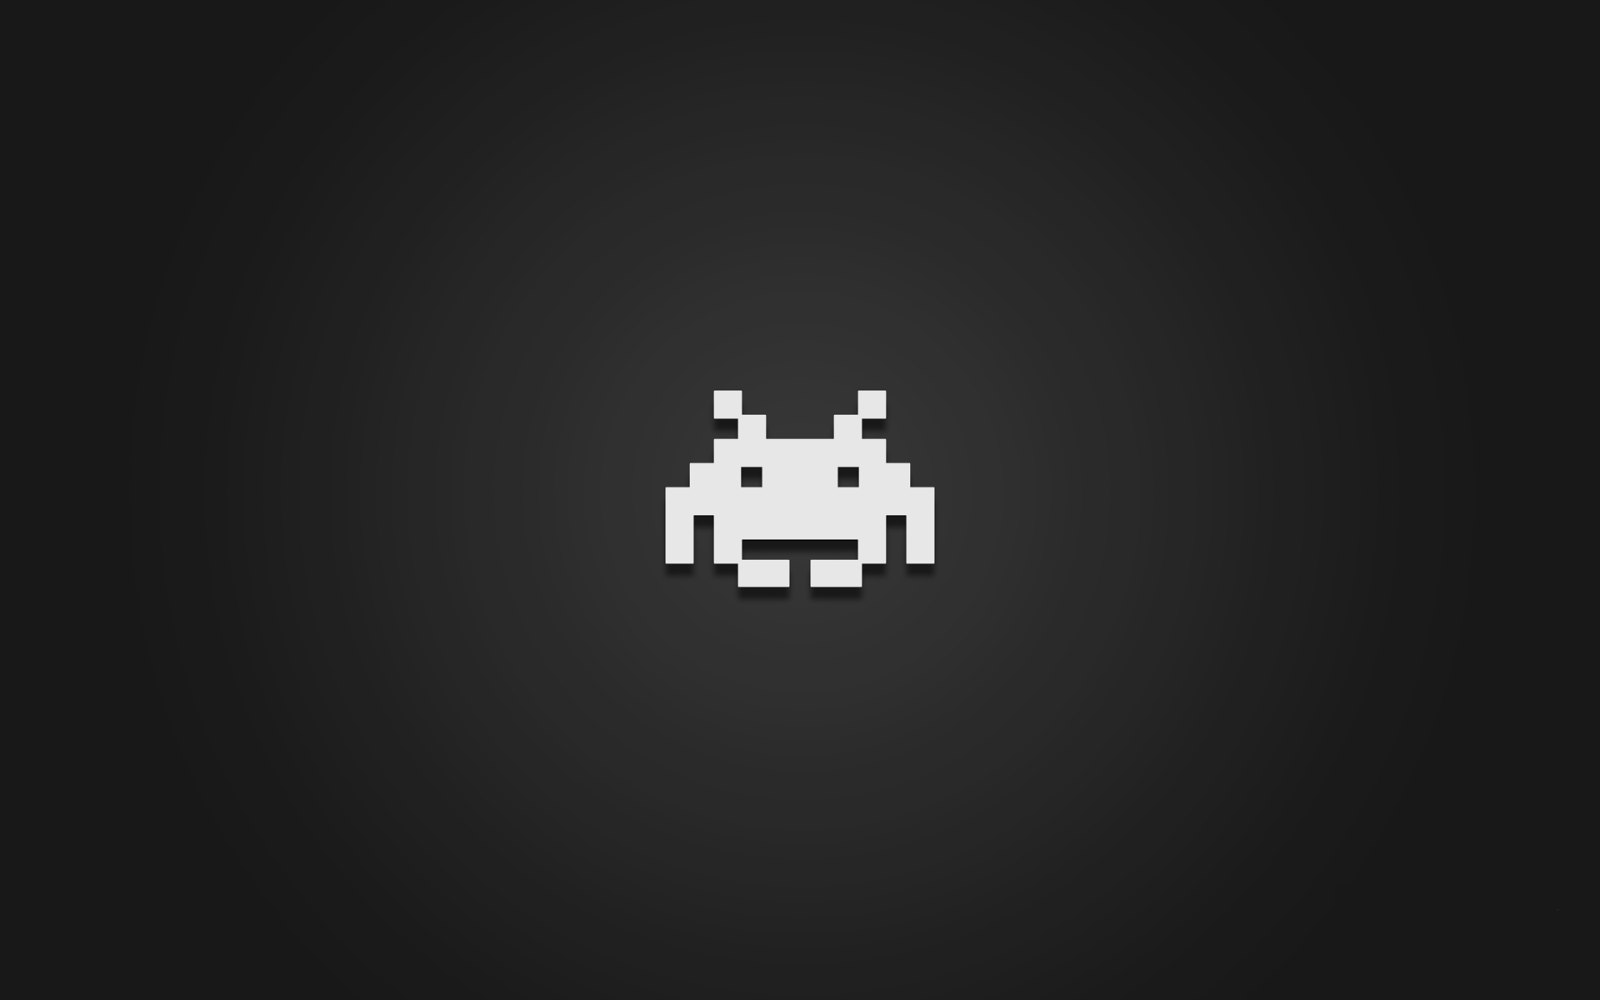 video games space invaders retro Wallpaperspng 1600x1000